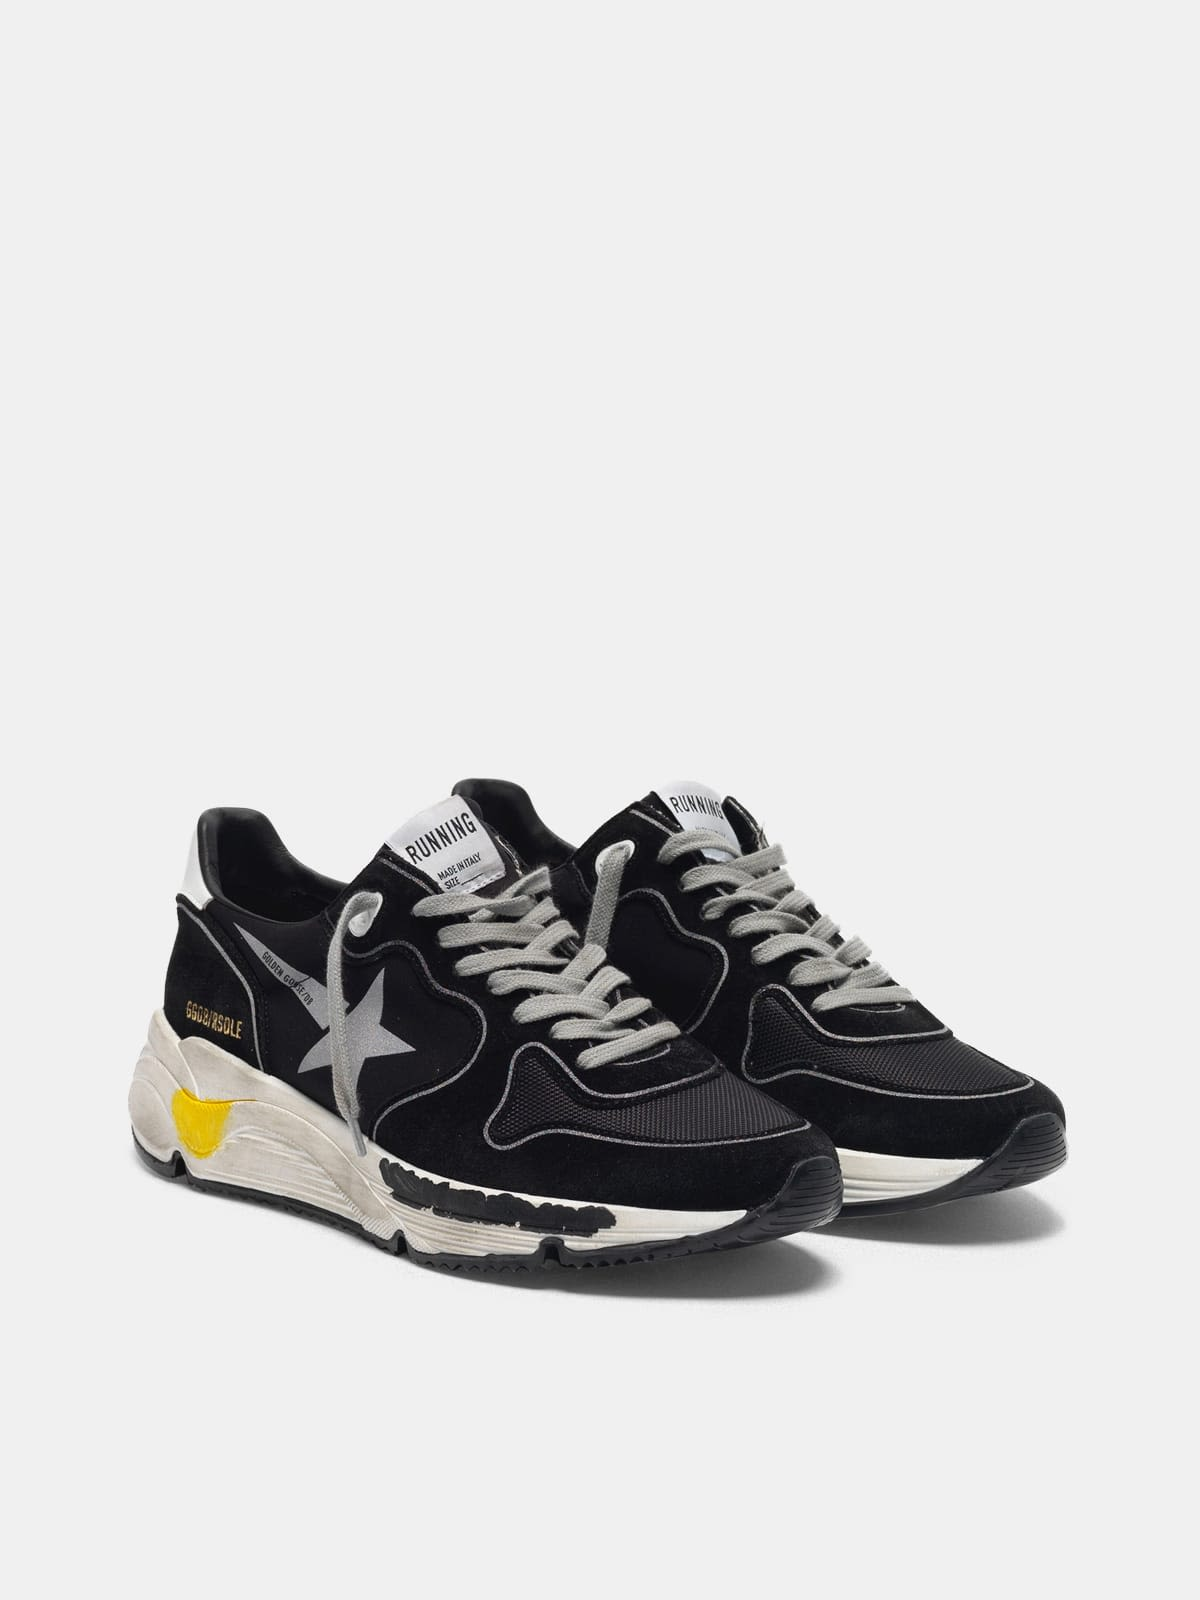 Black Running Sole sneakers with silver star